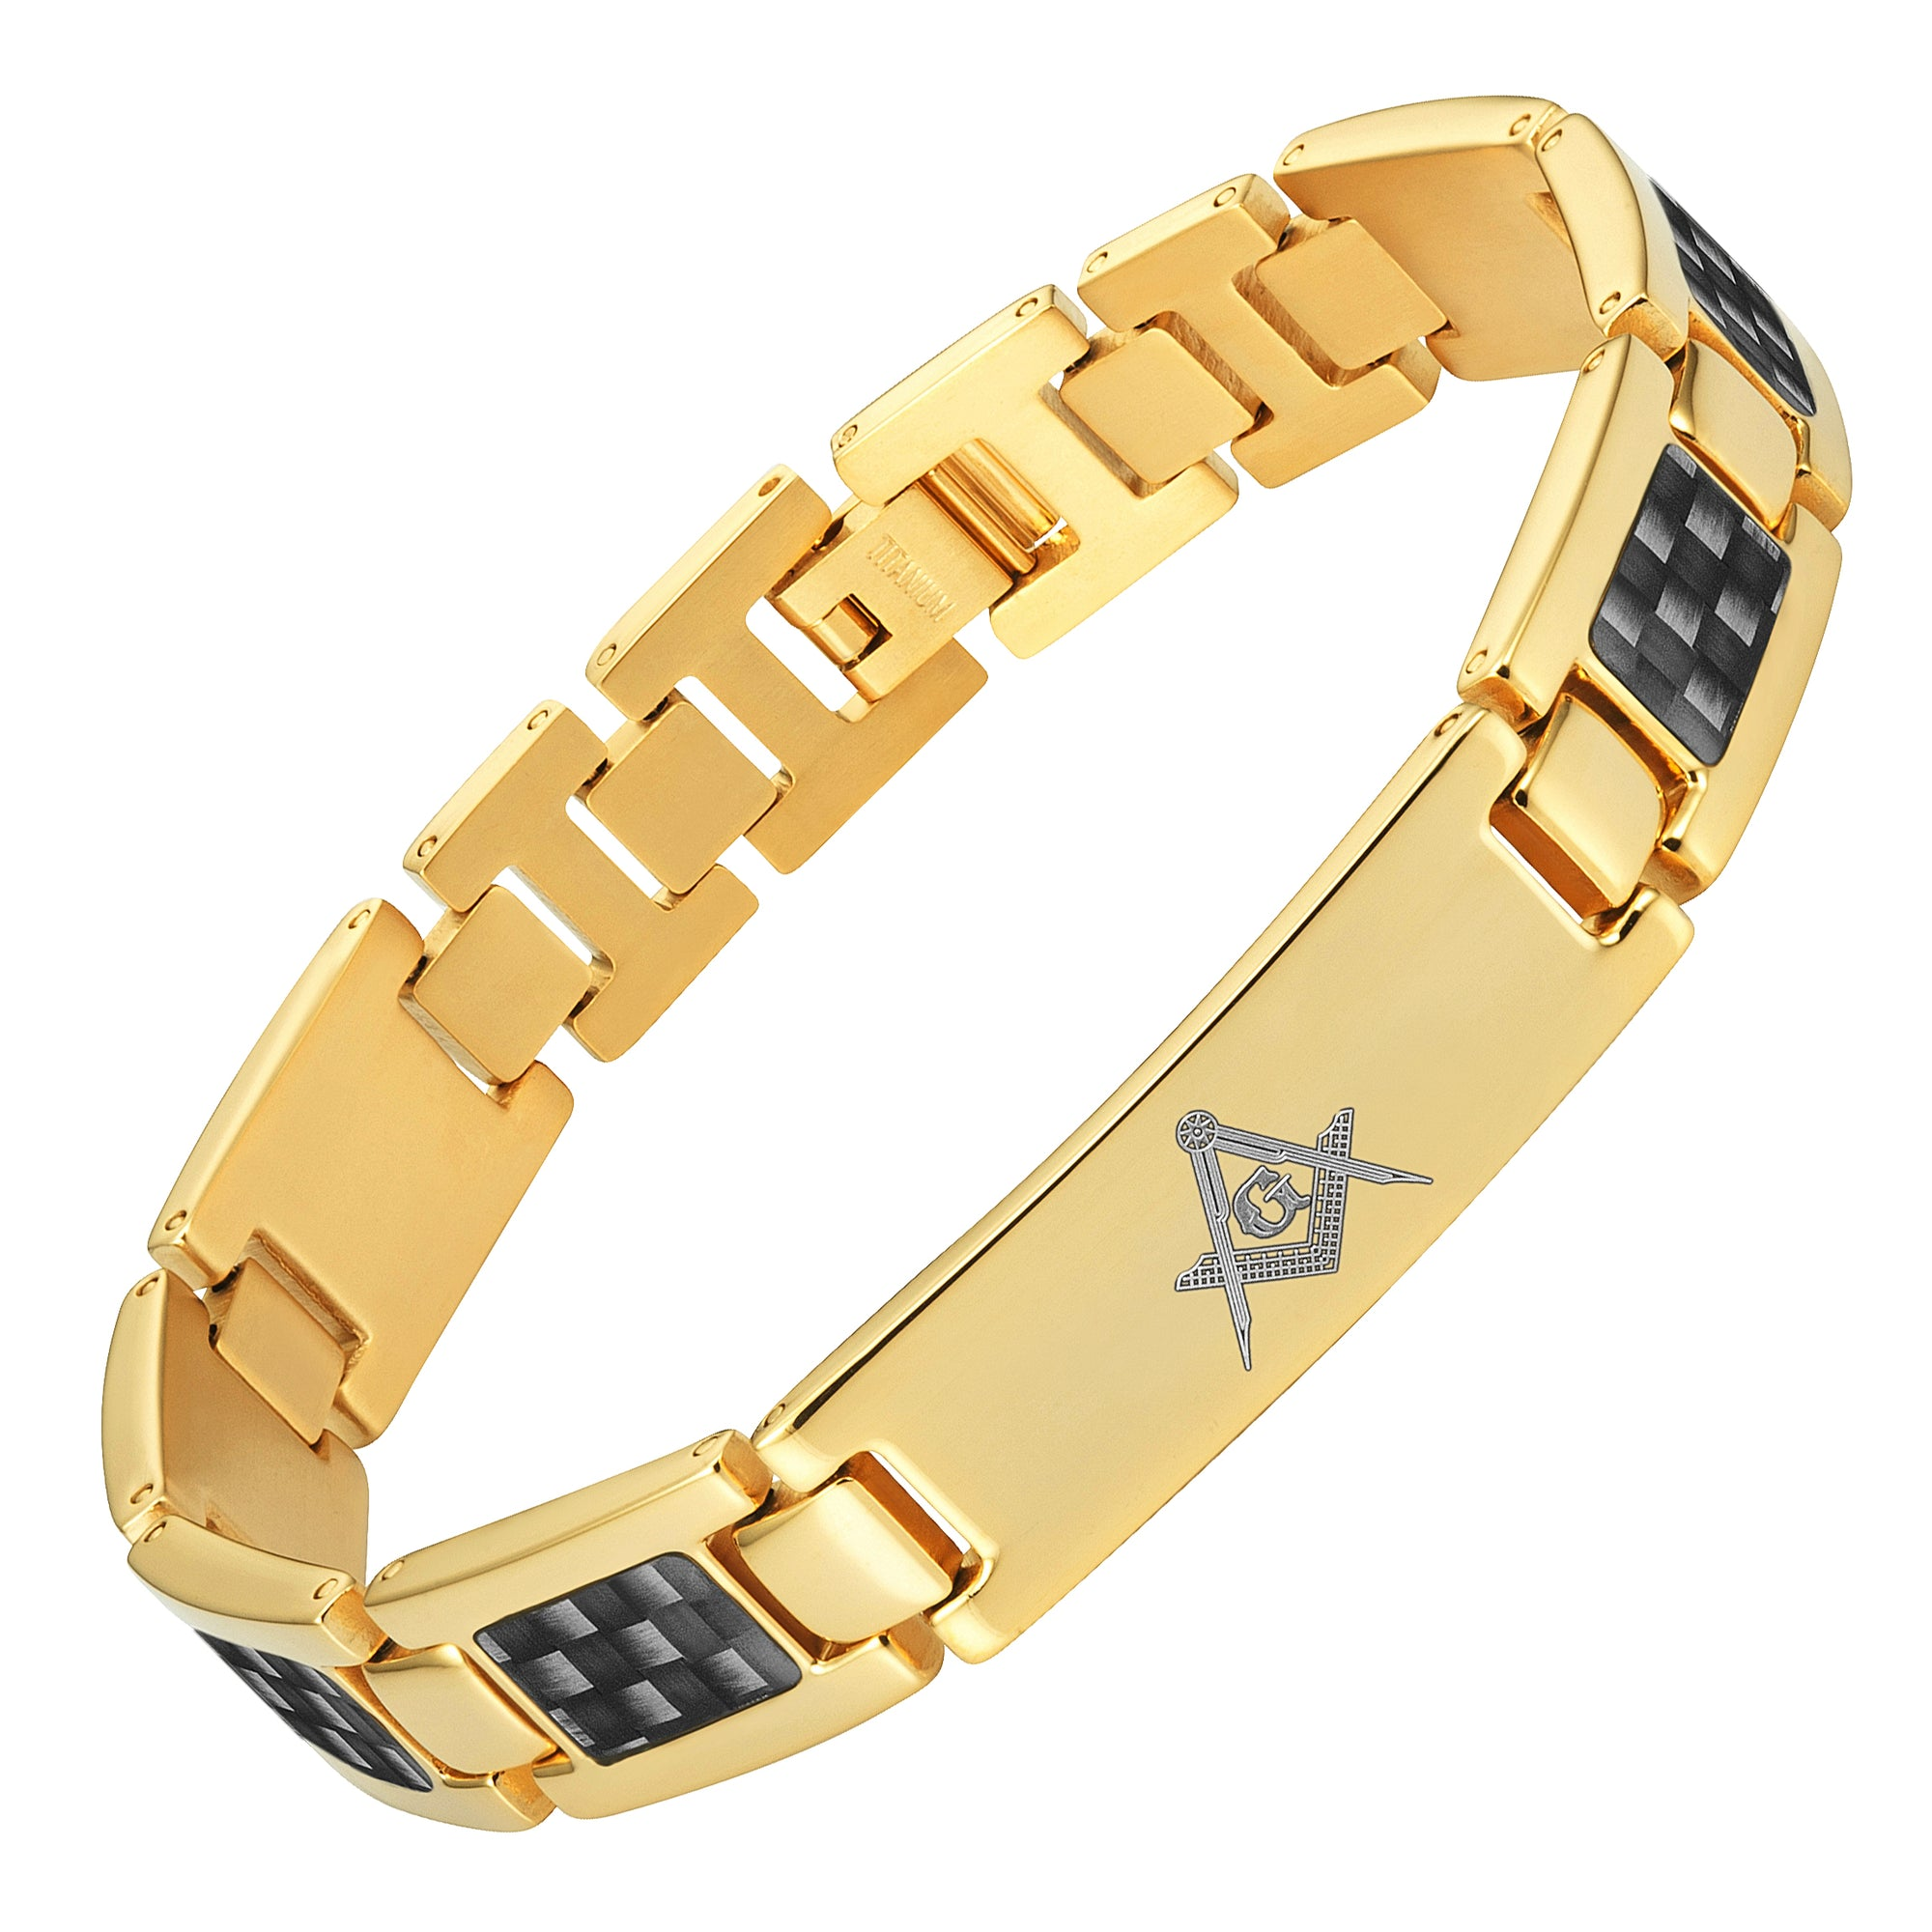 Masonic Gold Titanium Bracelet with Black Carbon Fiber